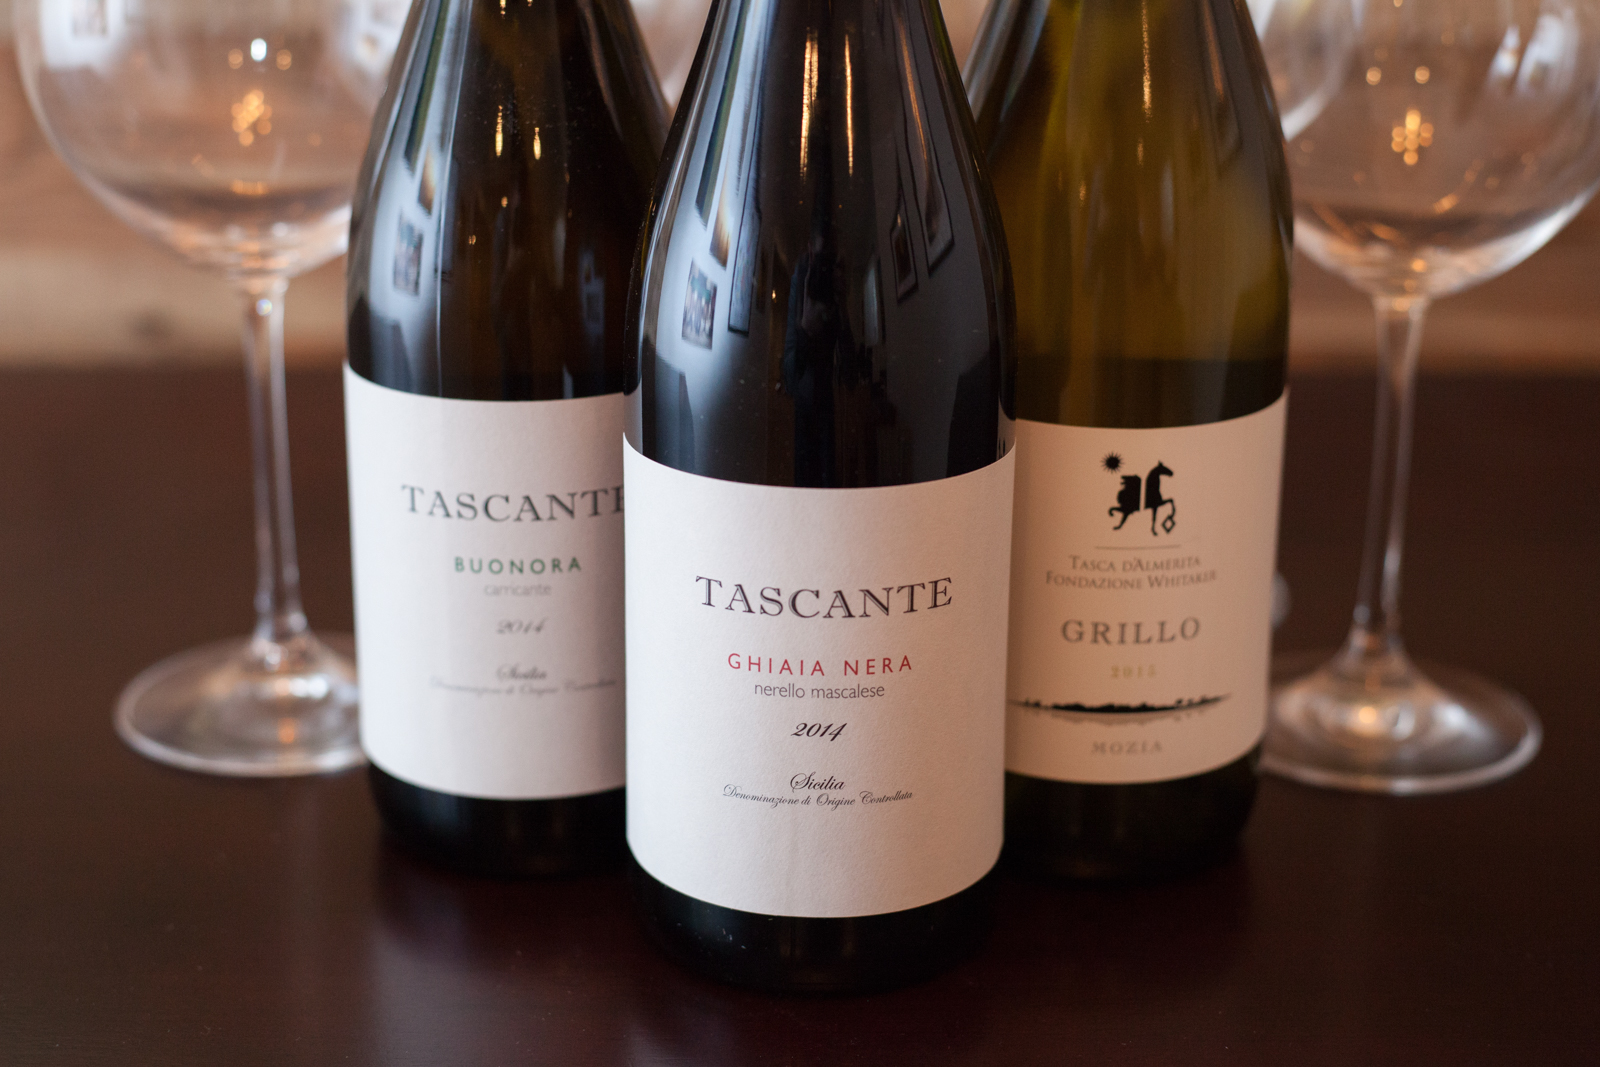 Wines of Tasca d'Almerita Tascante ©Kevin Day/Opening a Bottle